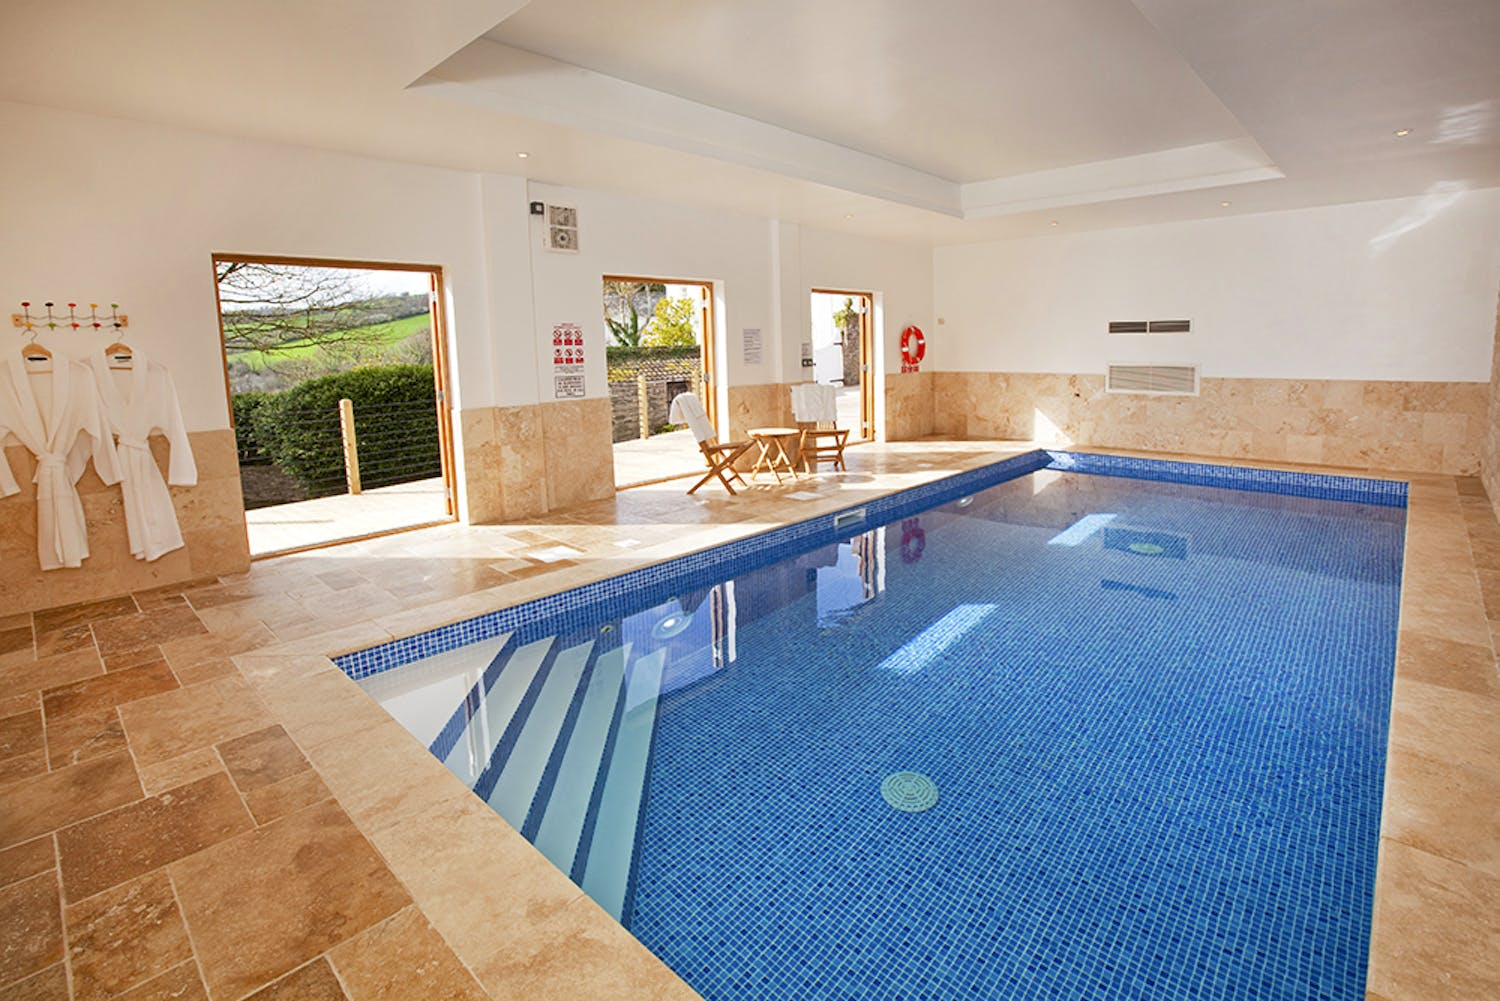 Swimming pools holiday ideas sleeps 12 - Houses in england with swimming pools ...